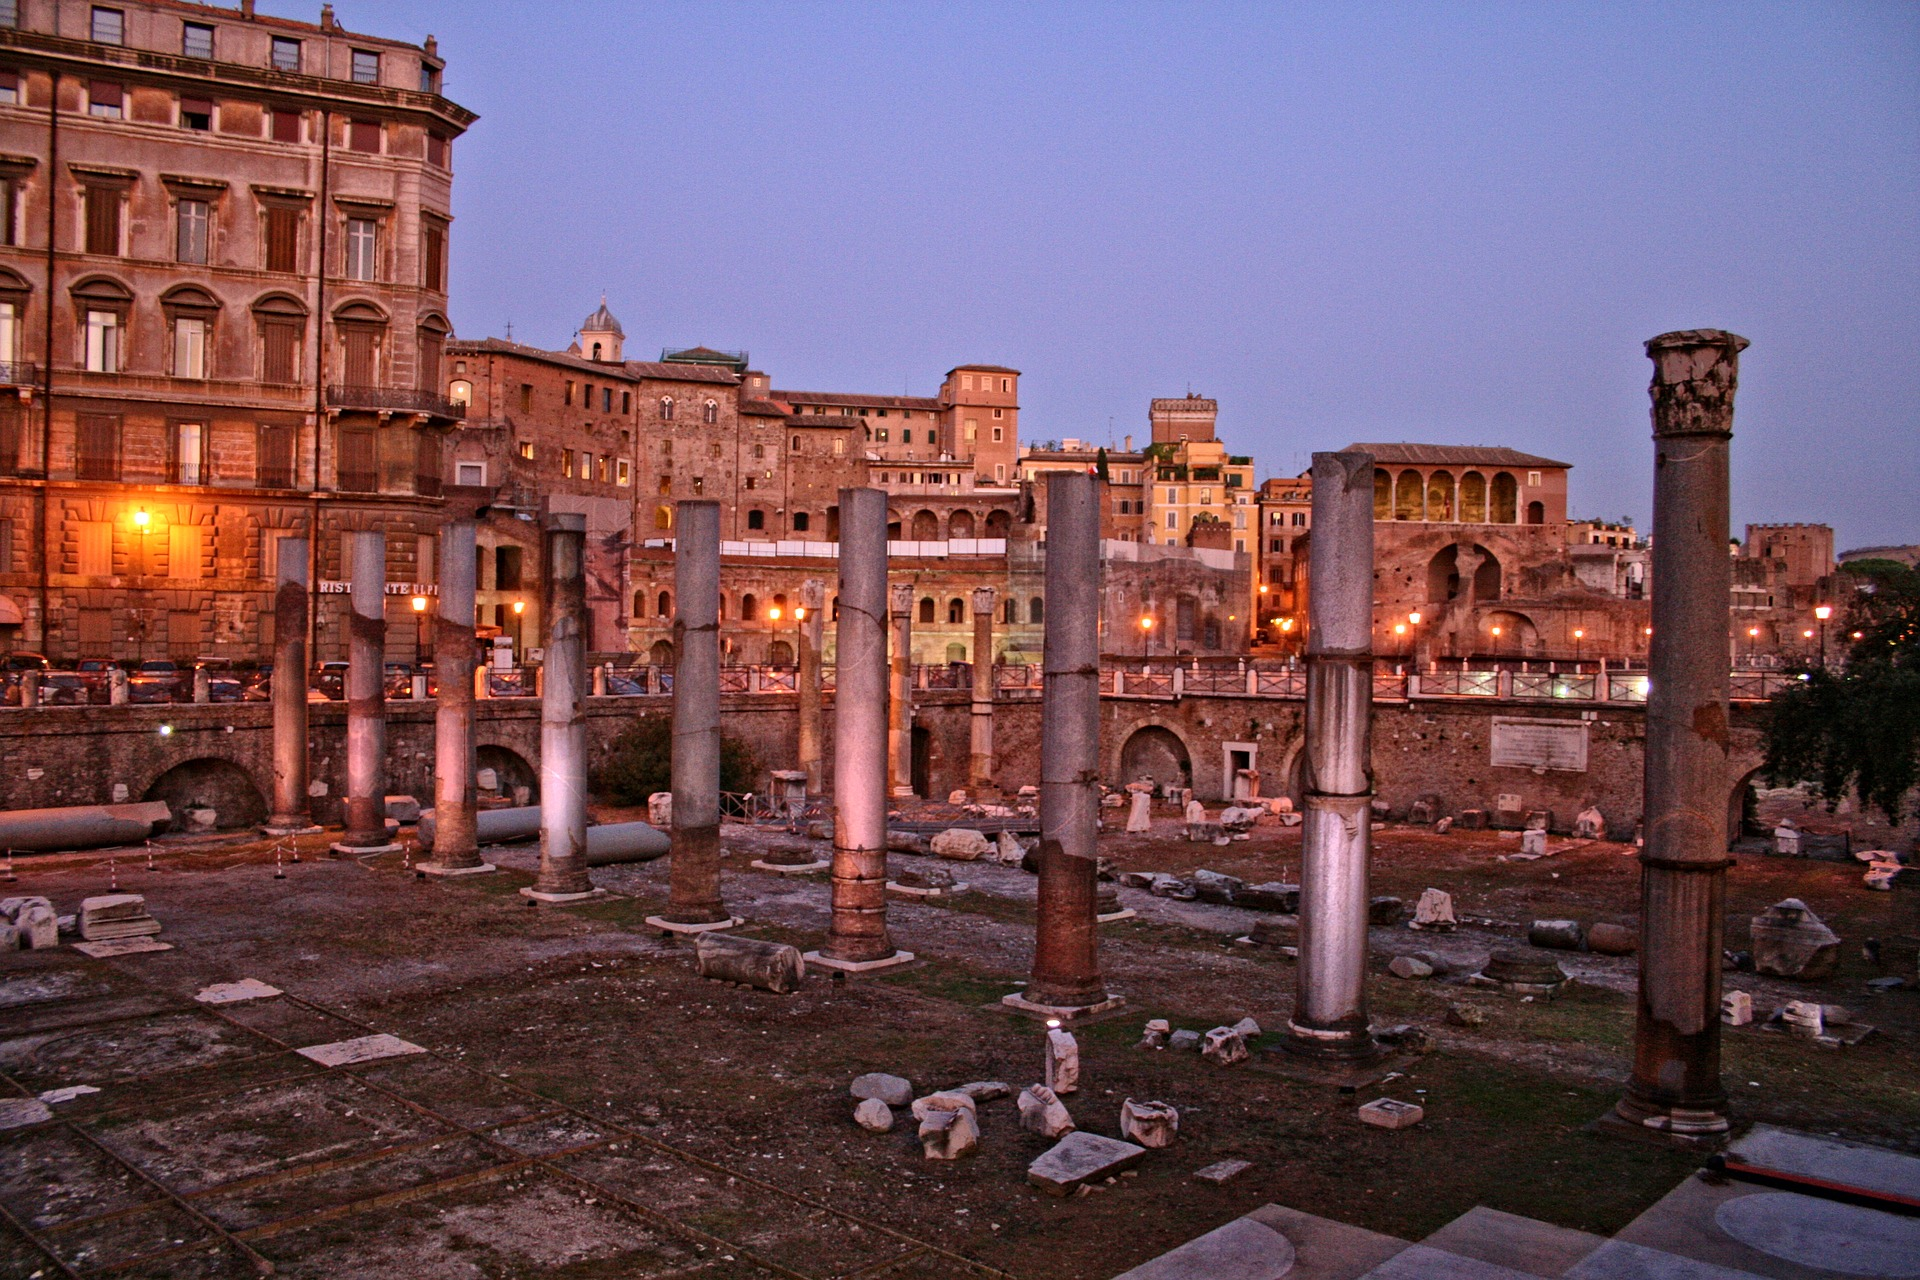 Roman Forum, Rome - at night